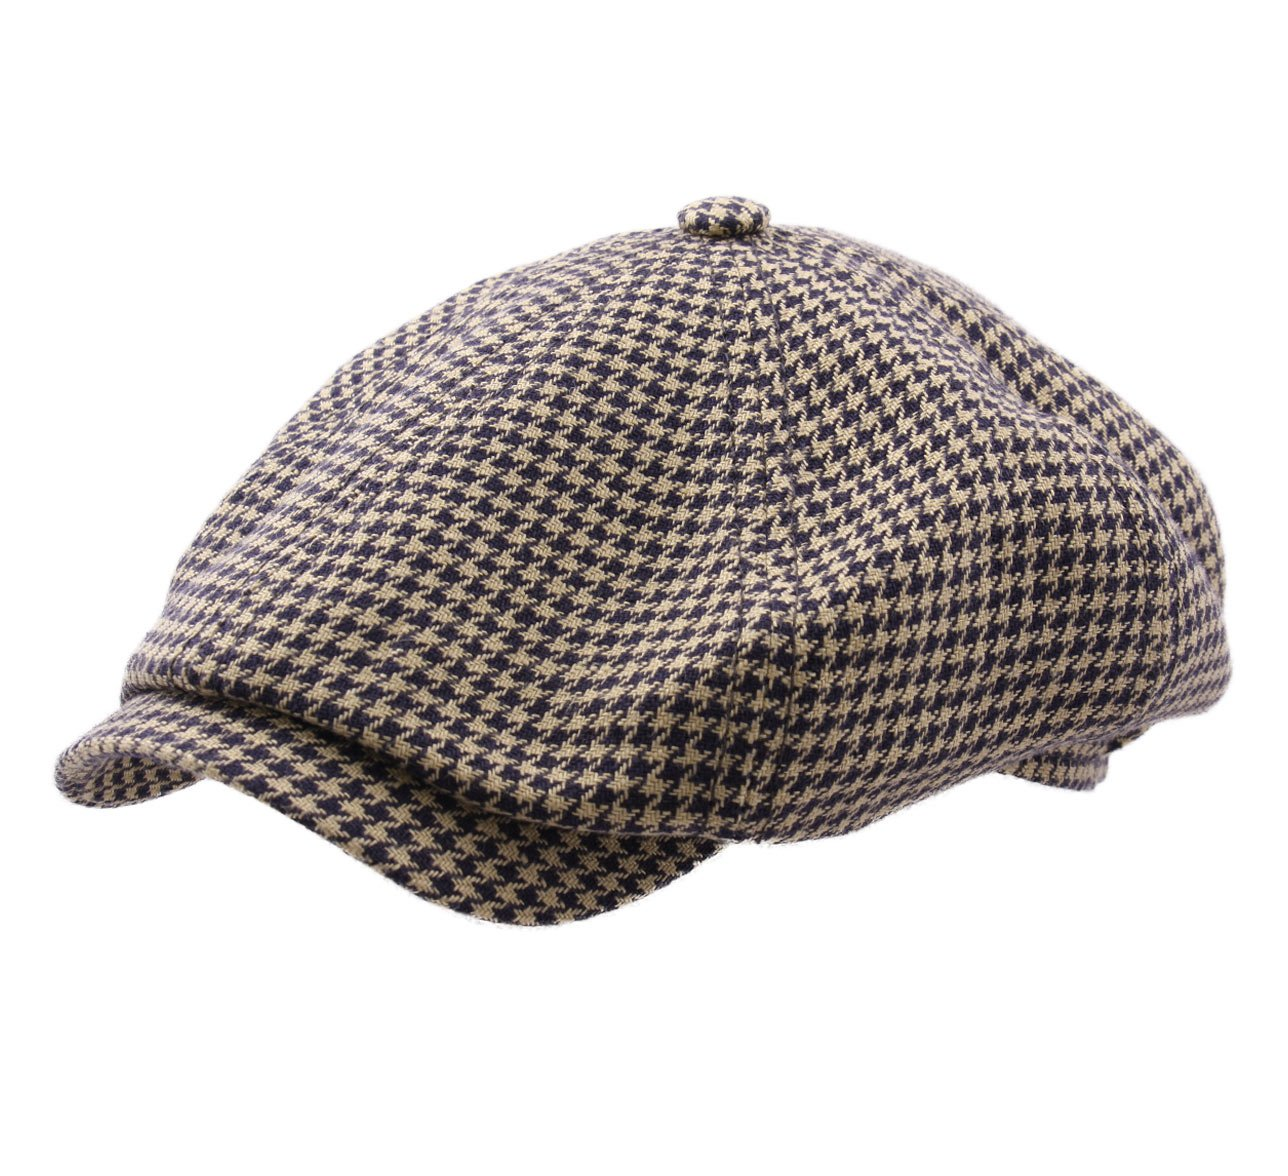 Stetson Women's Houndstooth Flat Cap Size M by Stetson